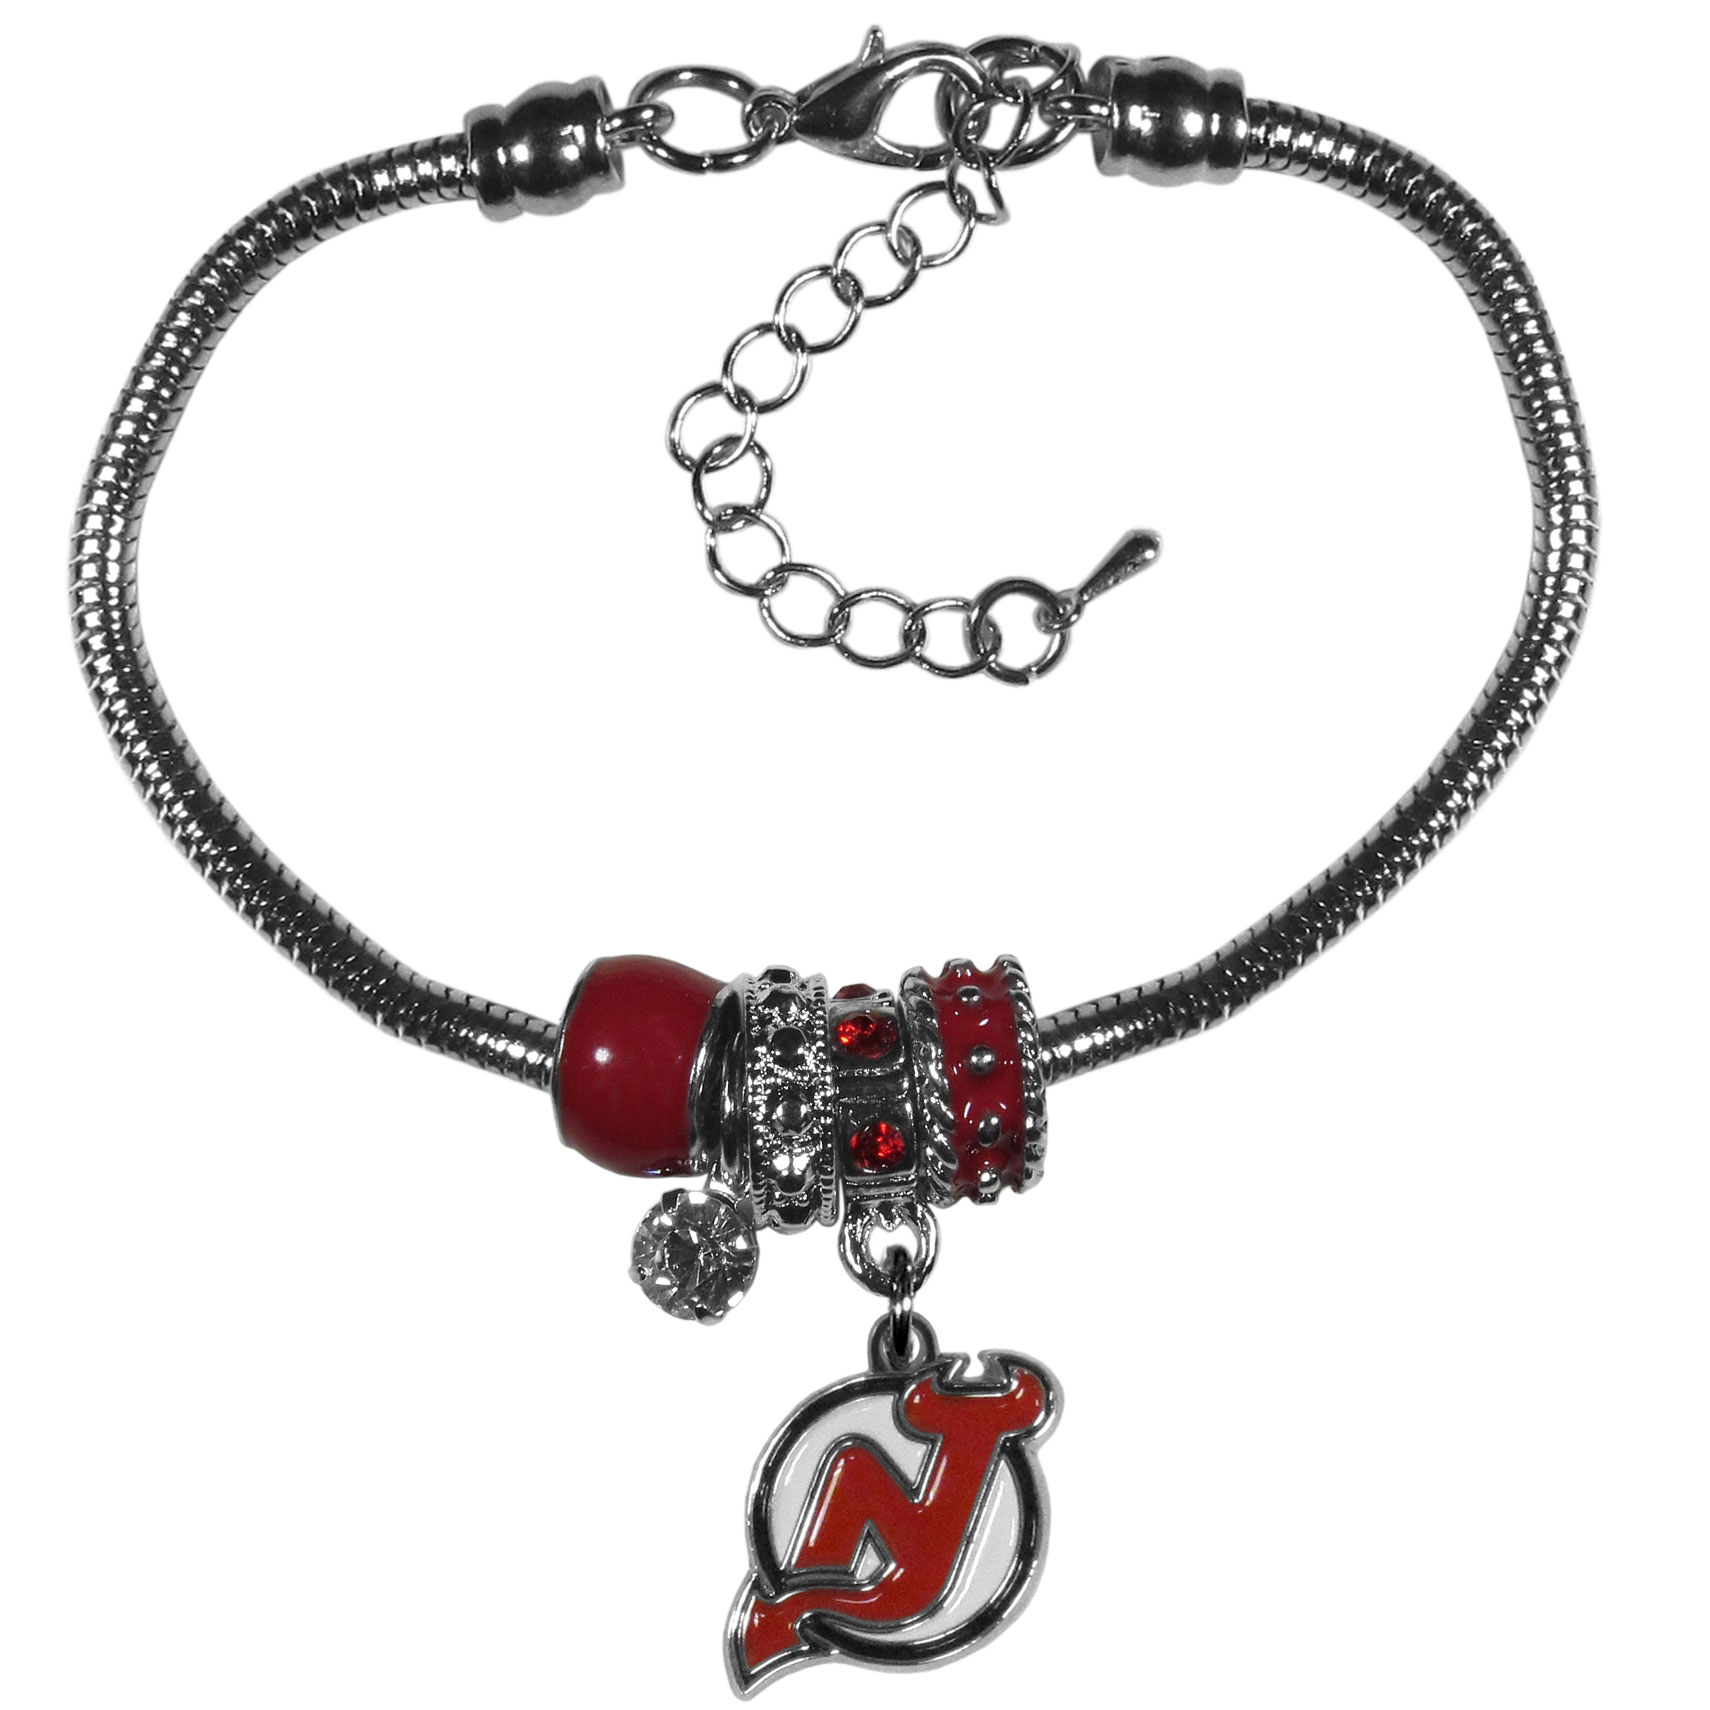 New Jersey Devils® Euro Bead Bracelet - We have combined the wildly popular Euro style beads with your favorite team to create our  New Jersey Devils® bead bracelet. The 7.5 inch snake chain with 2 inch extender features 4 Euro beads with enameled team colors and rhinestone accents with a high polish, nickel free charm and rhinestone charm. Perfect way to show off your team pride.